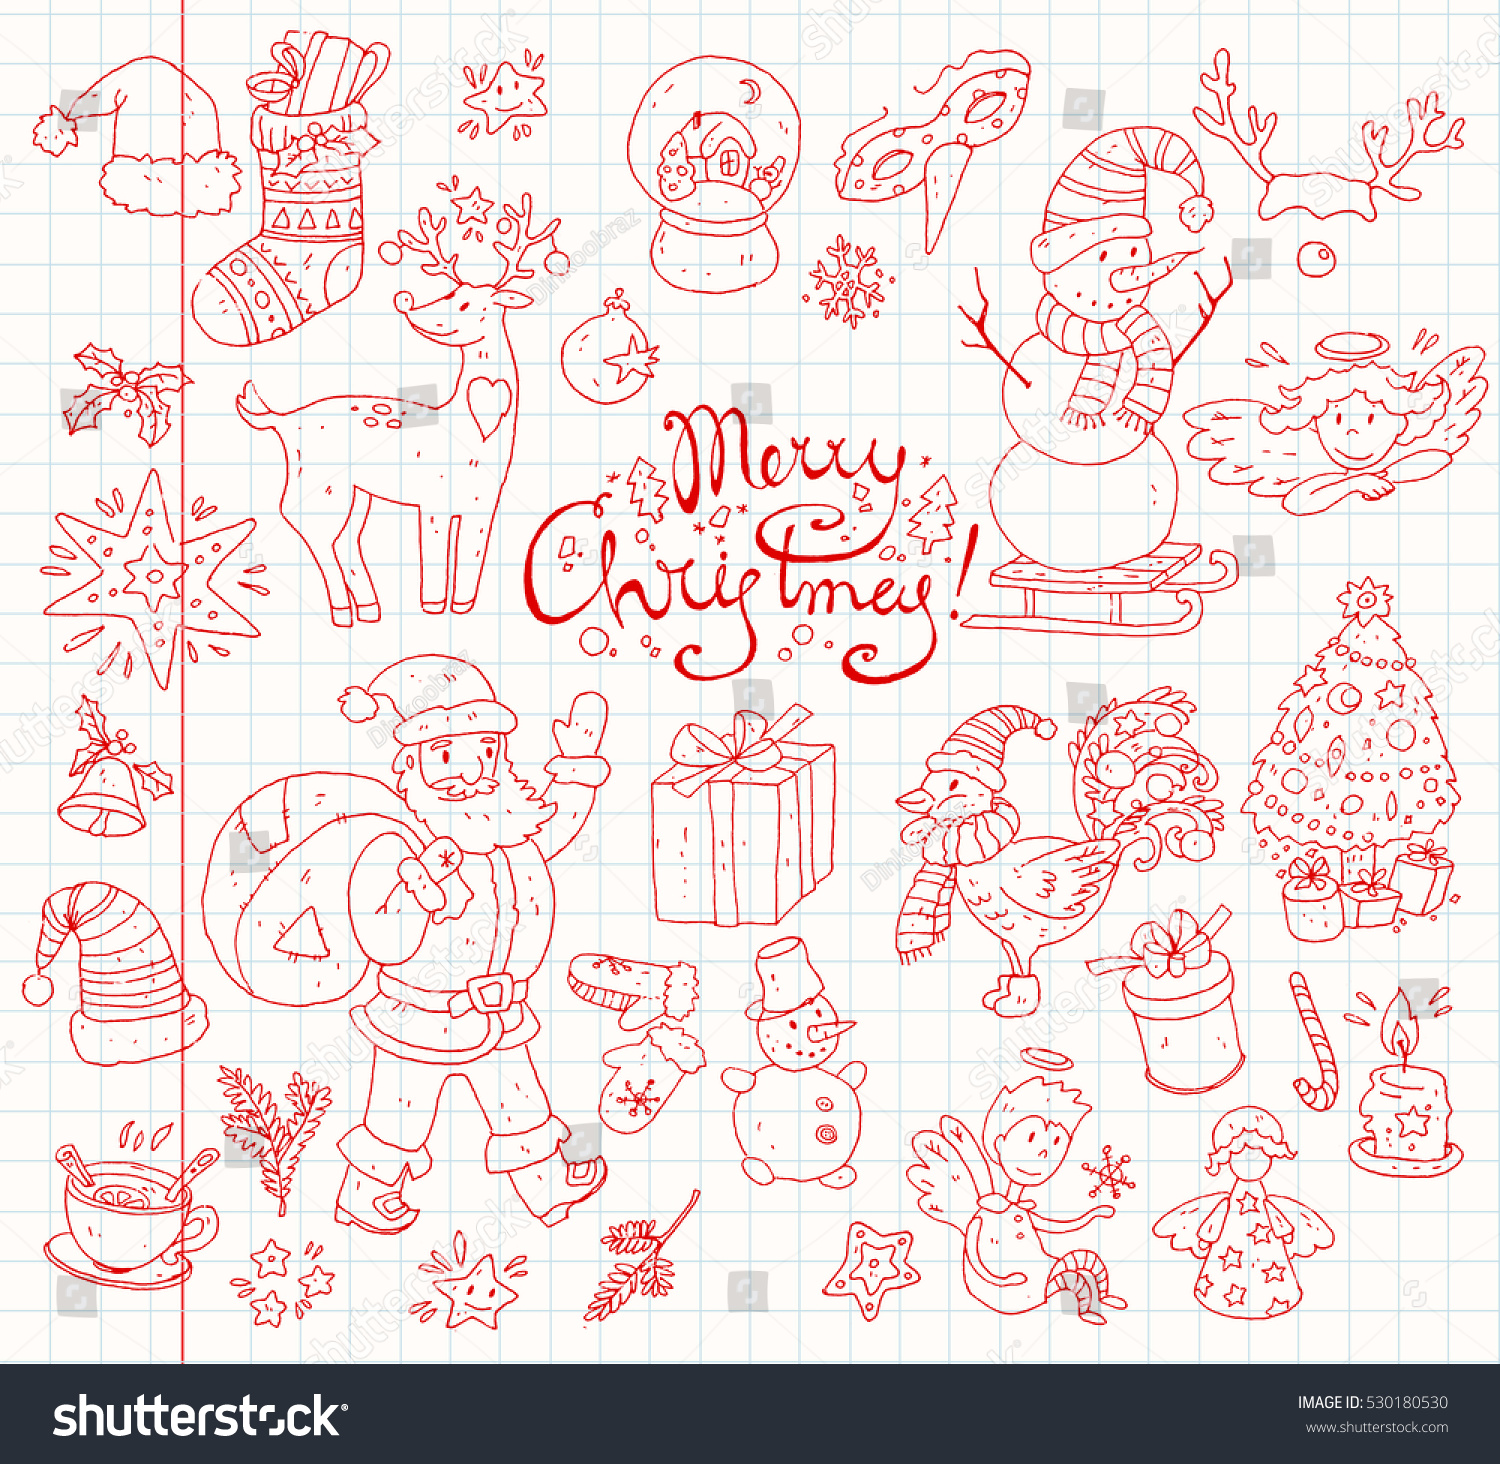 Big Vector Collection New Year Christmas Stock Vector 530180530